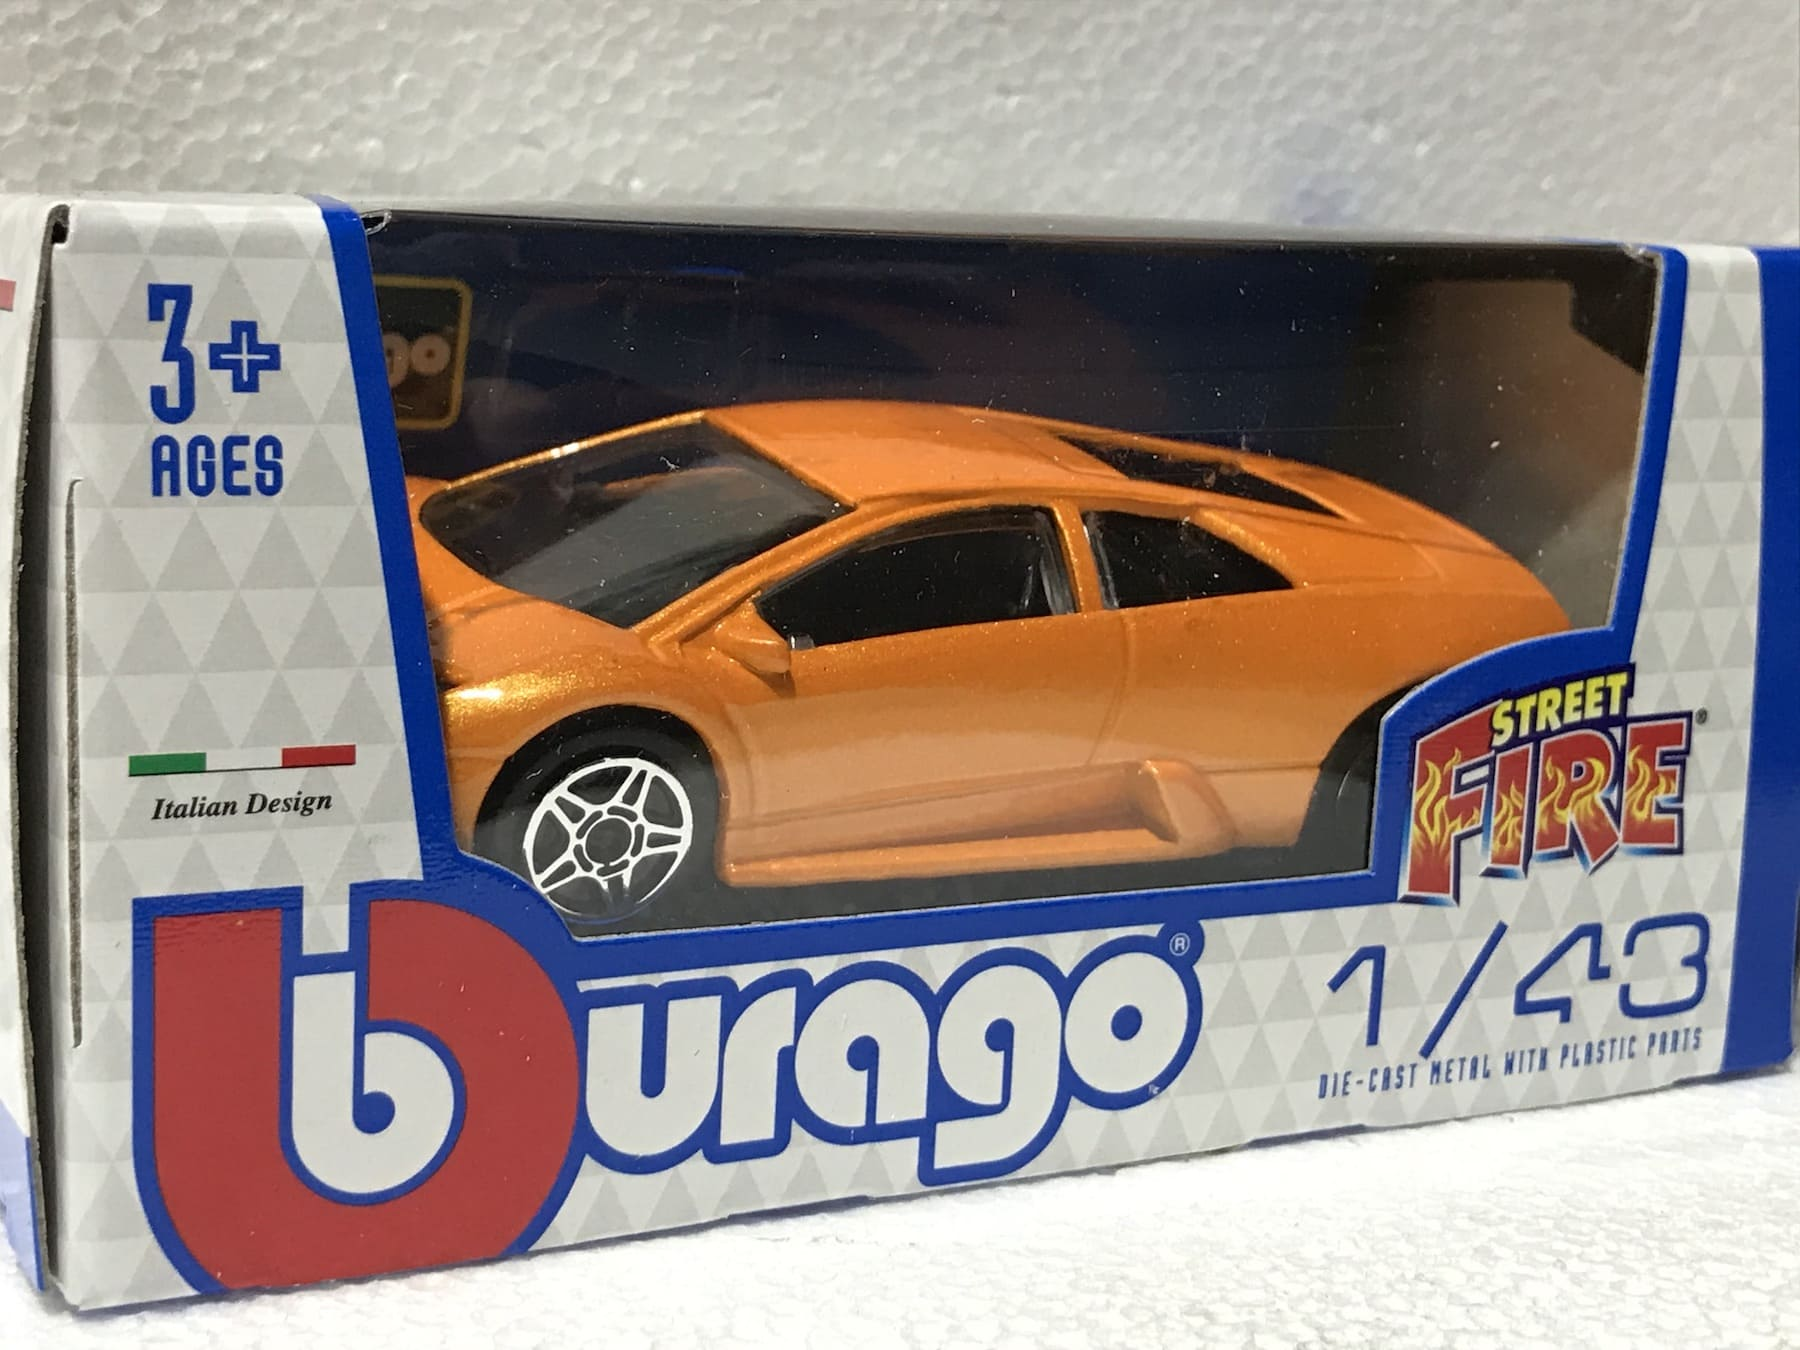 Lamborghini Orange Street Fire 1:43 Scale Model Car Toy Childs Kids Dads Enthusiasts Collectors Gift Present